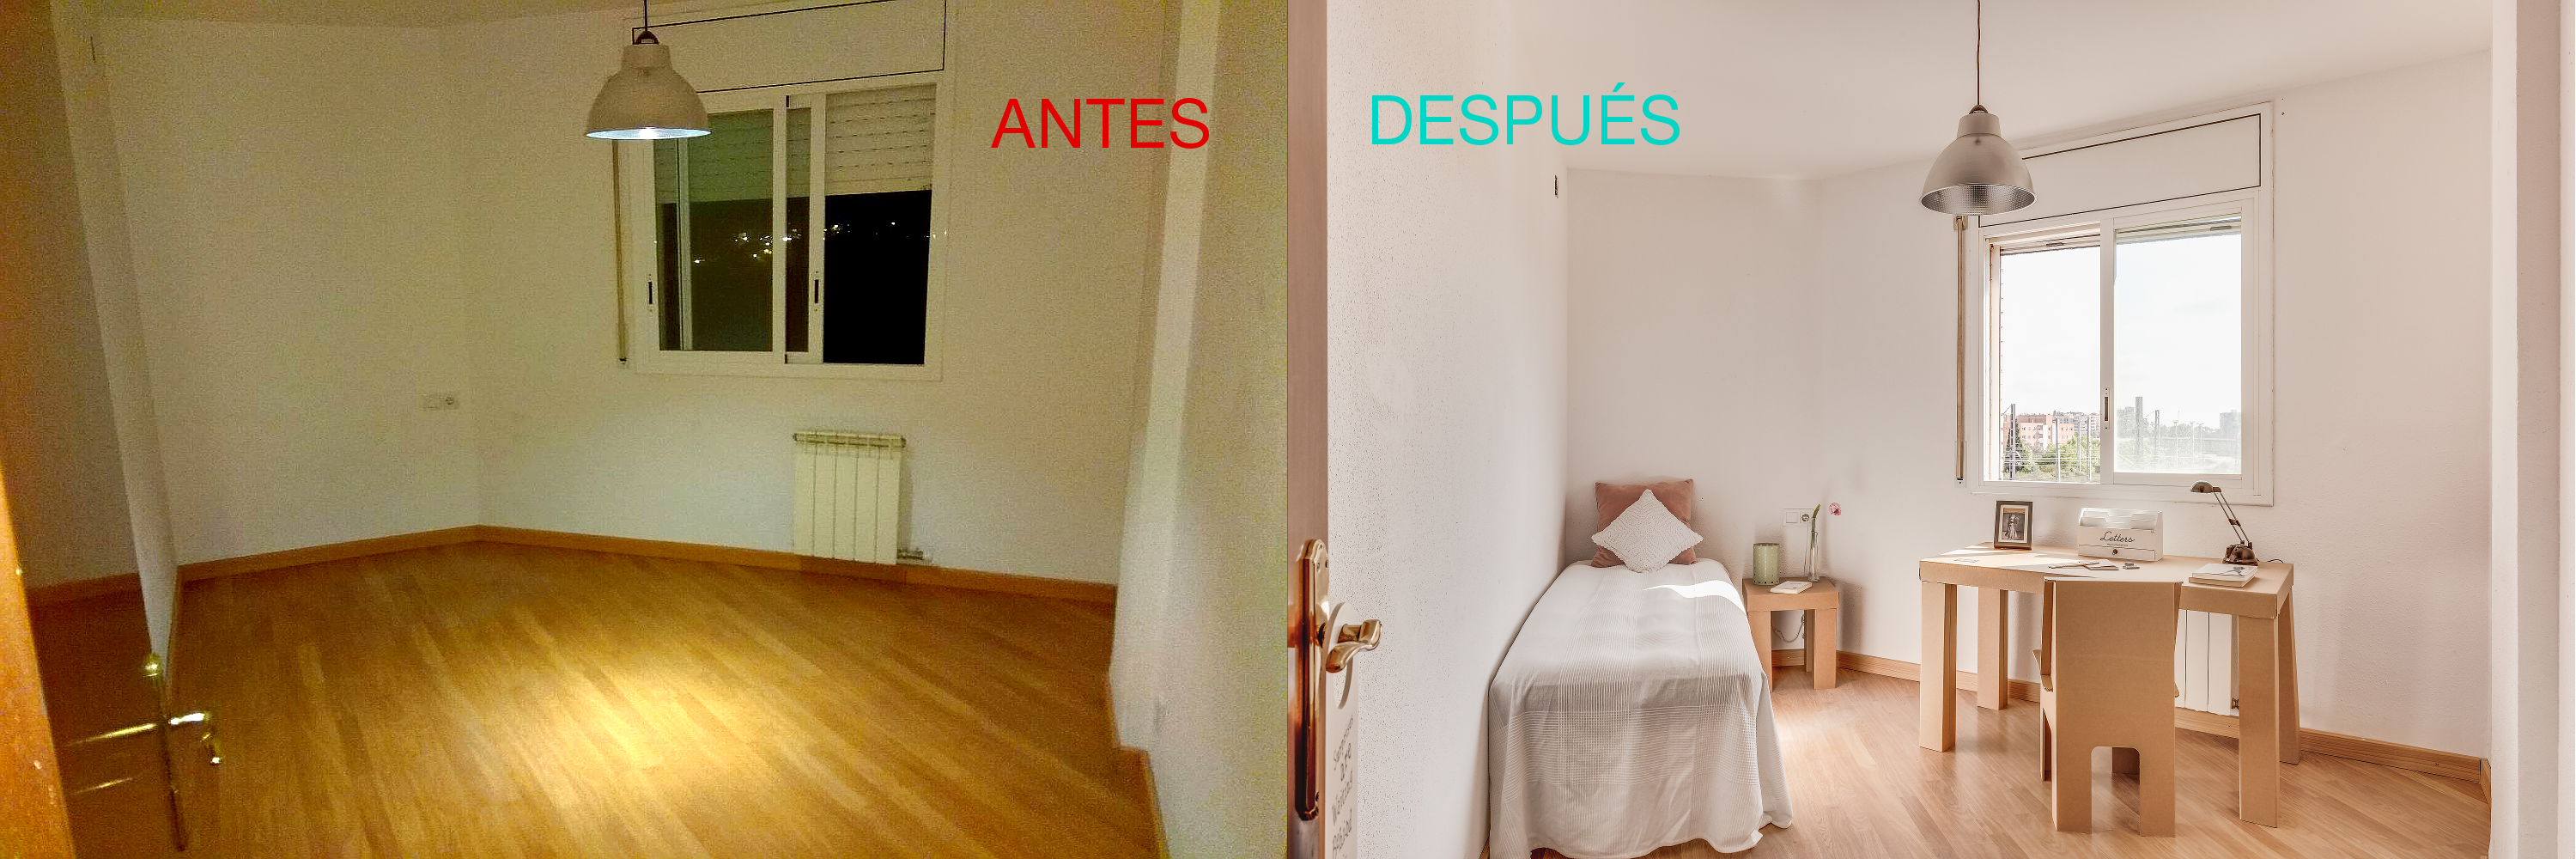 Home Staging Reus 3